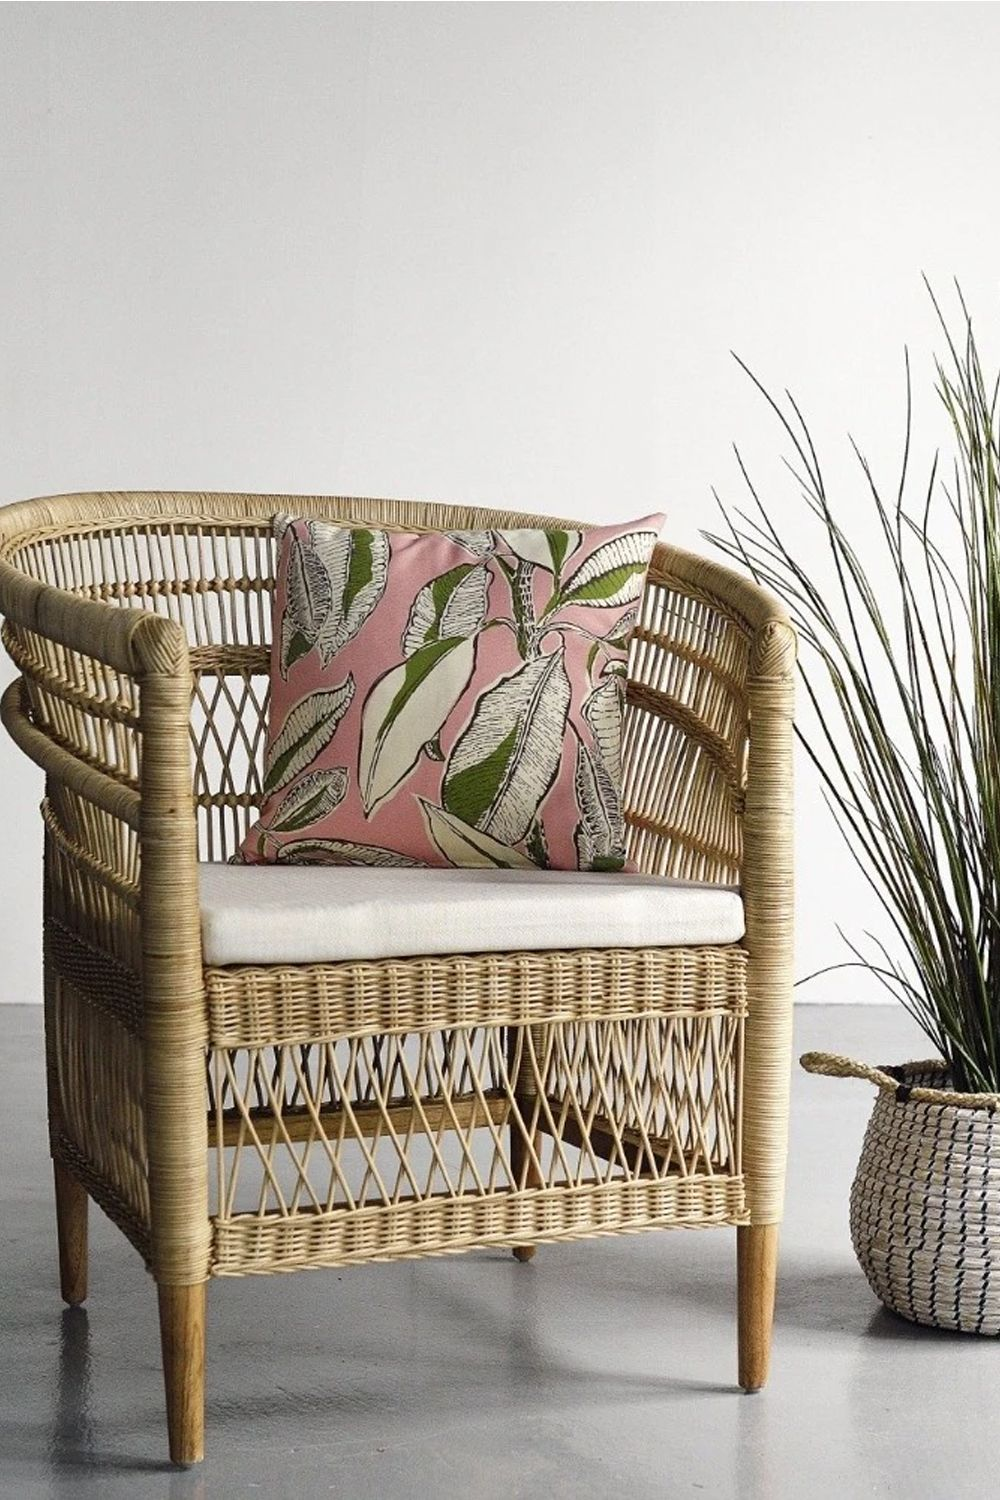 12 Stylish Rattan Furniture Pieces And Decor Pieces For Your Home Tatler Singapore